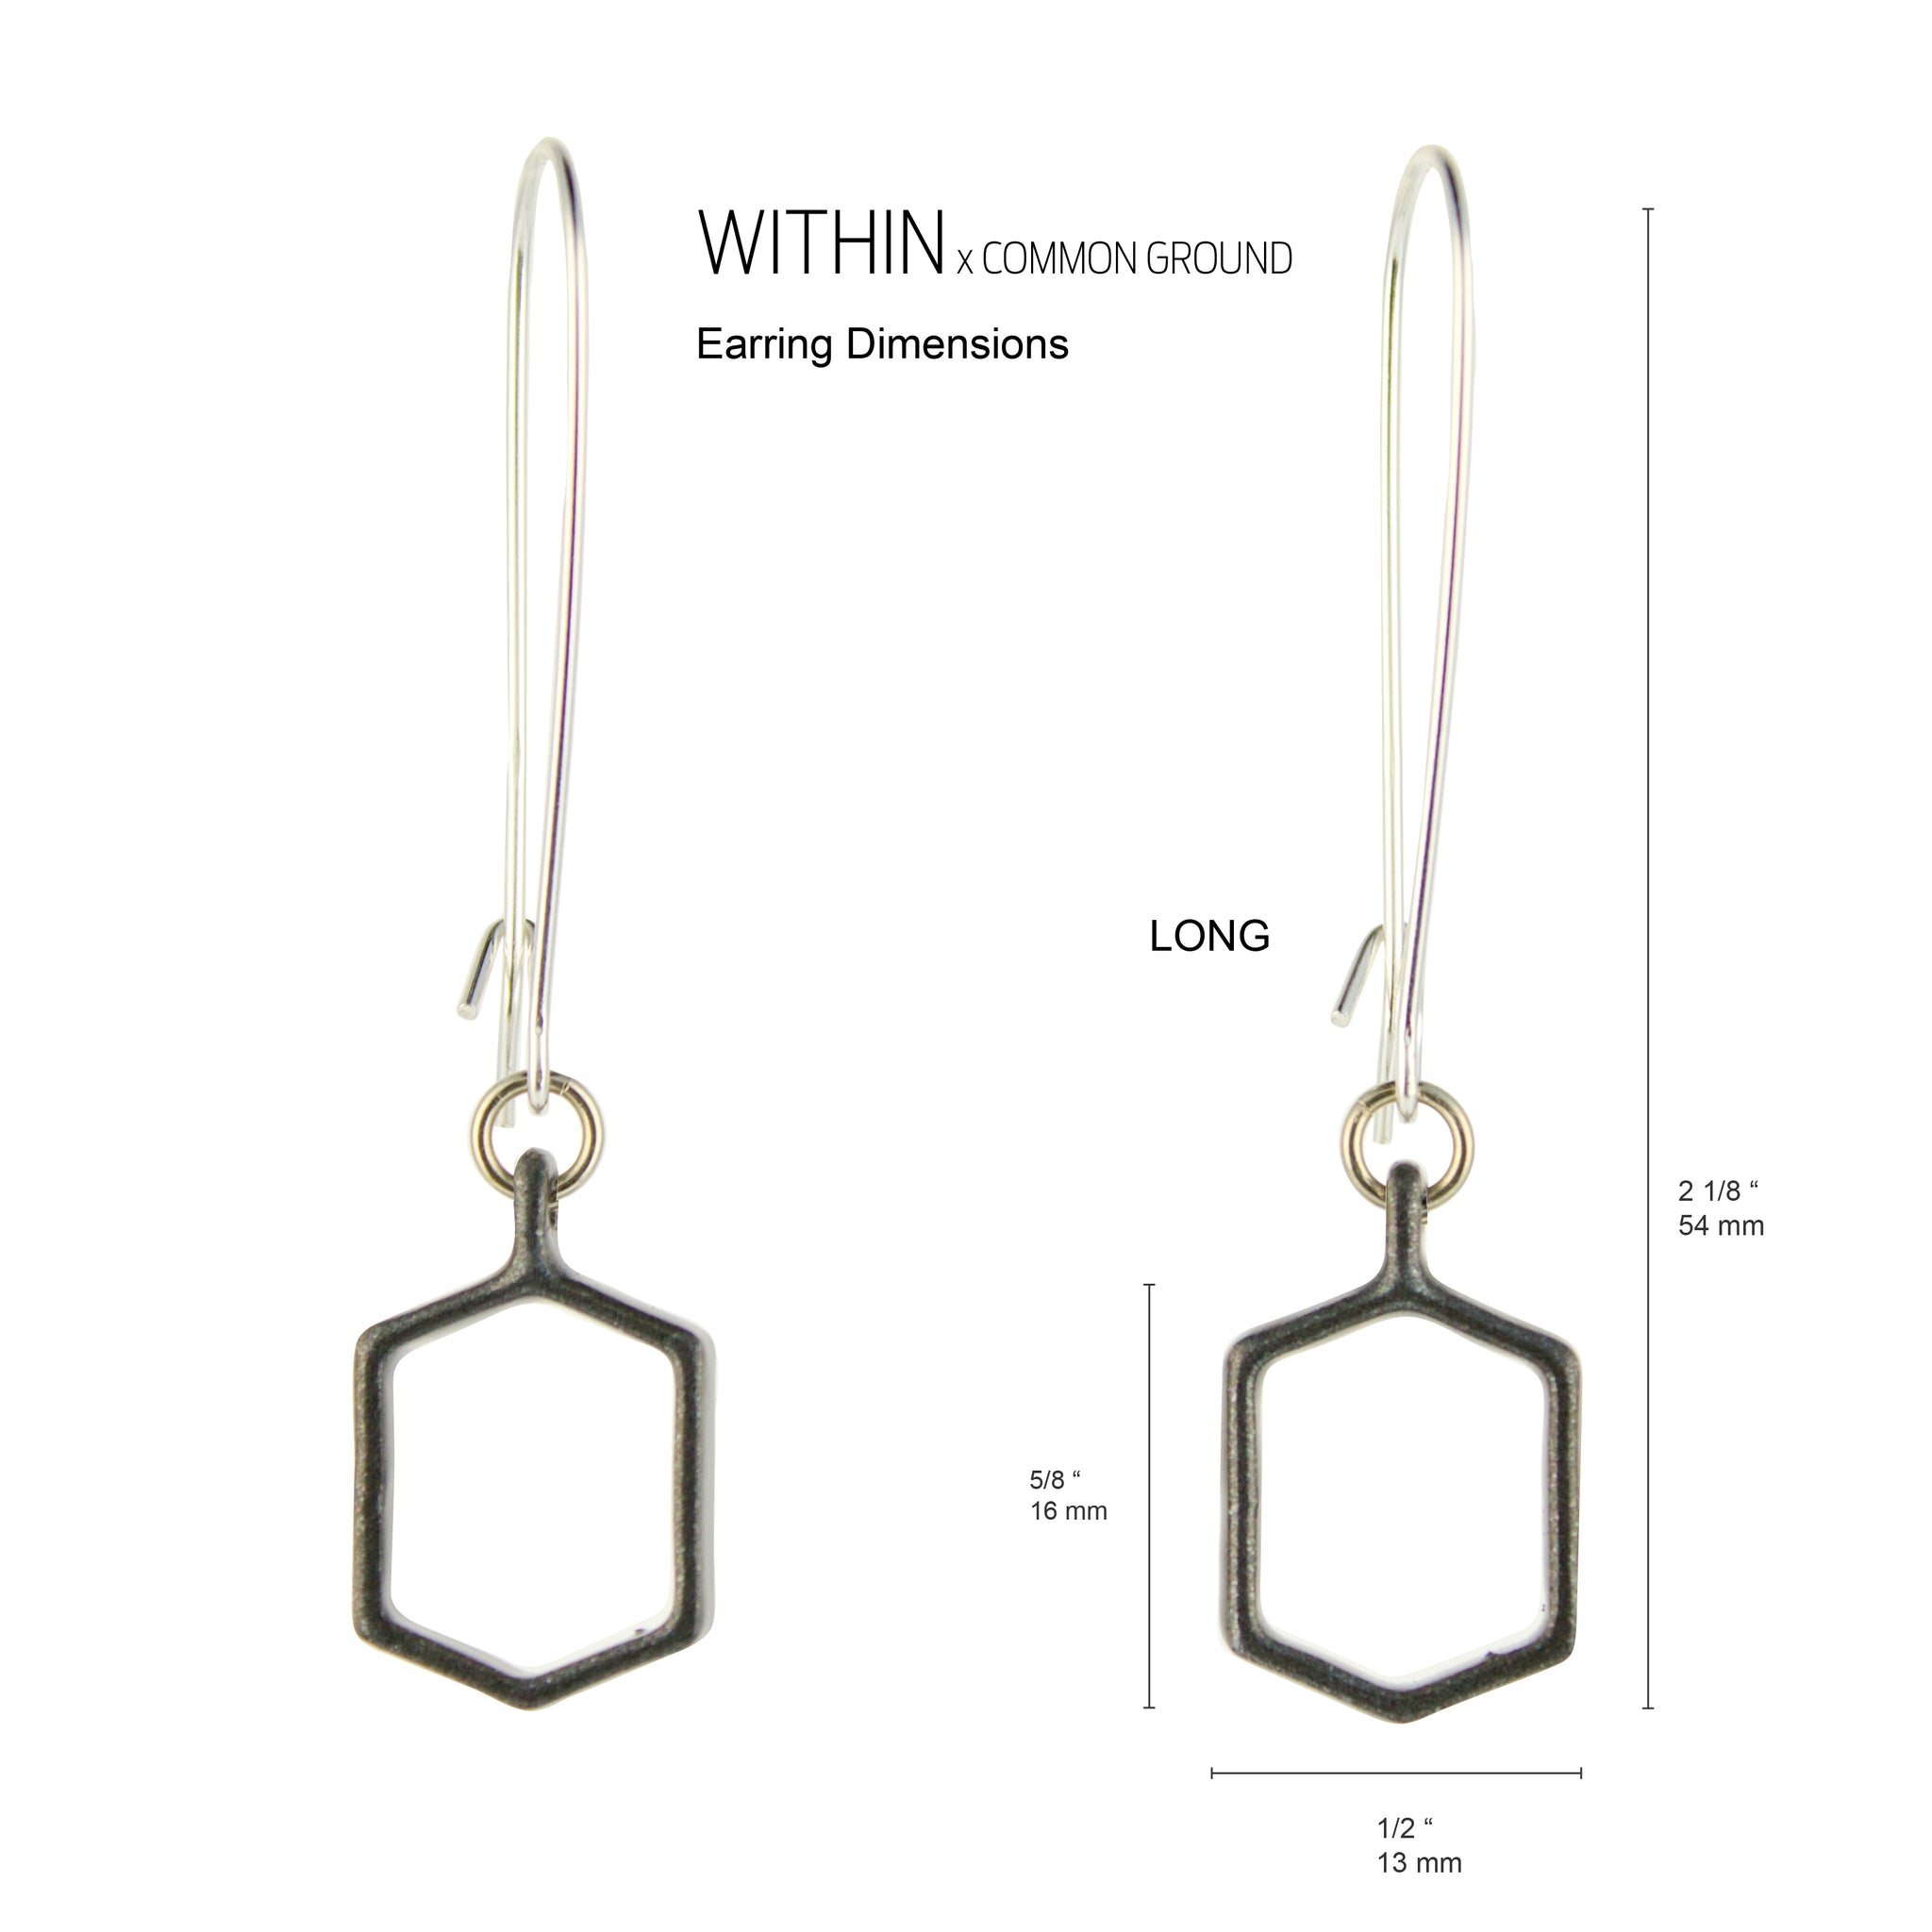 Alloy_Gray - WITHIN x COMMON GROUND Earring Dim View